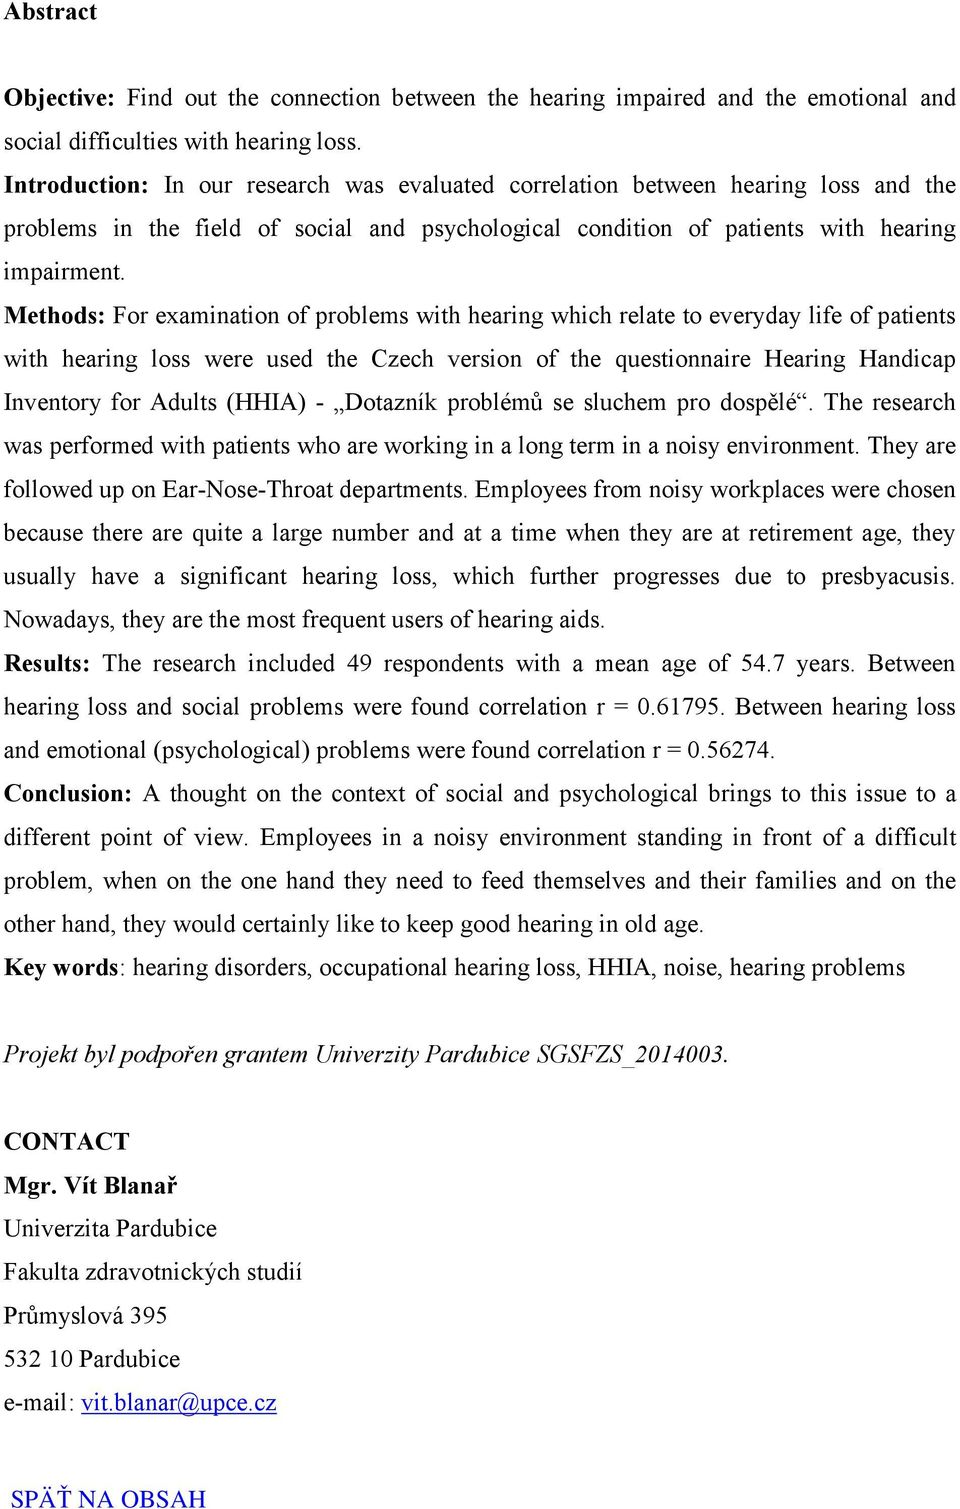 Methods: For examination of problems with hearing which relate to everyday life of patients with hearing loss were used the Czech version of the questionnaire Hearing Handicap Inventory for Adults